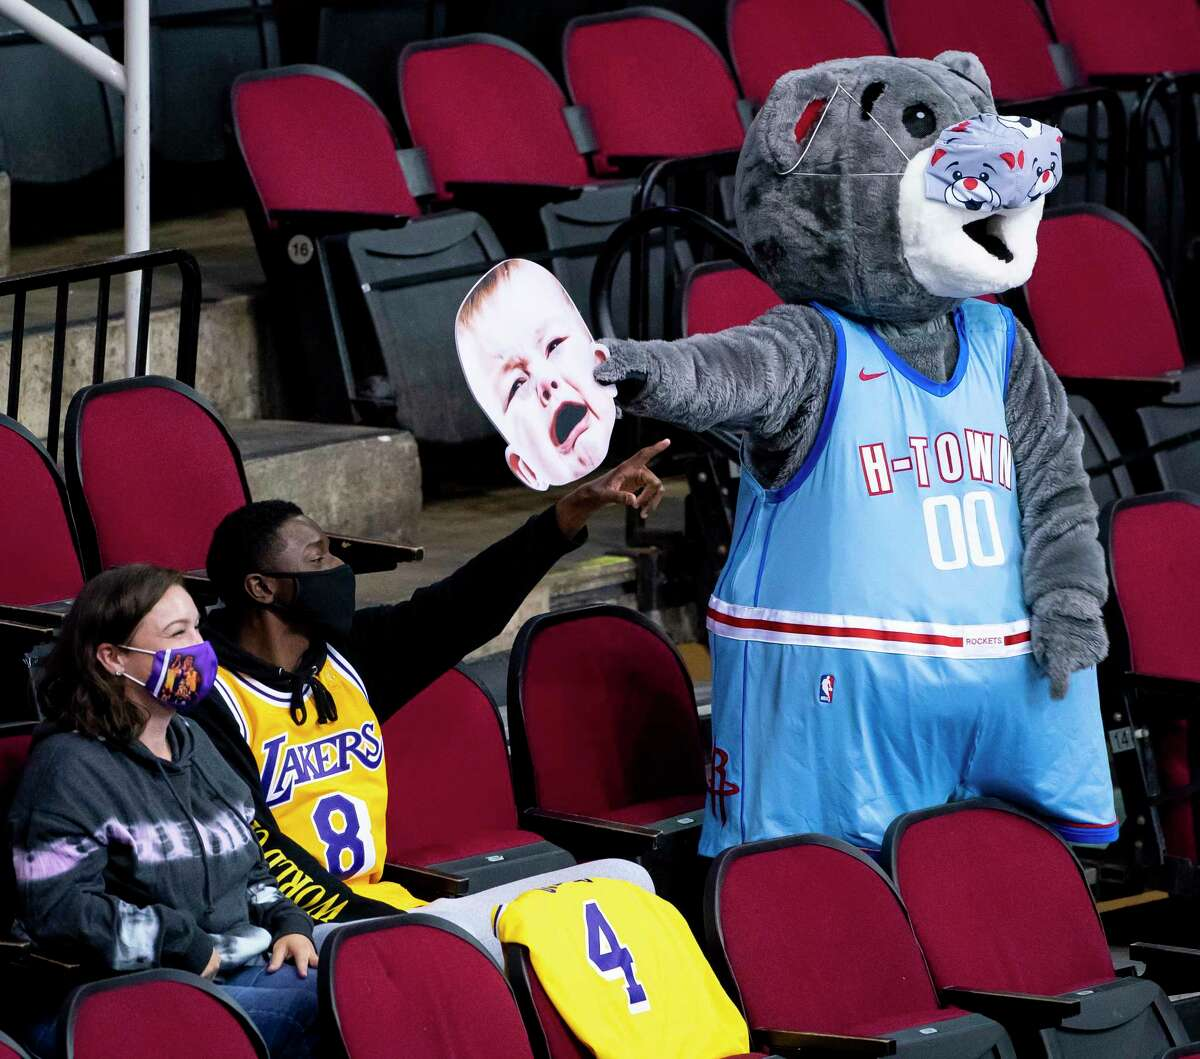 The Rockets are hopeful of playing on Friday and Saturday at home, Clutch the Bear included.